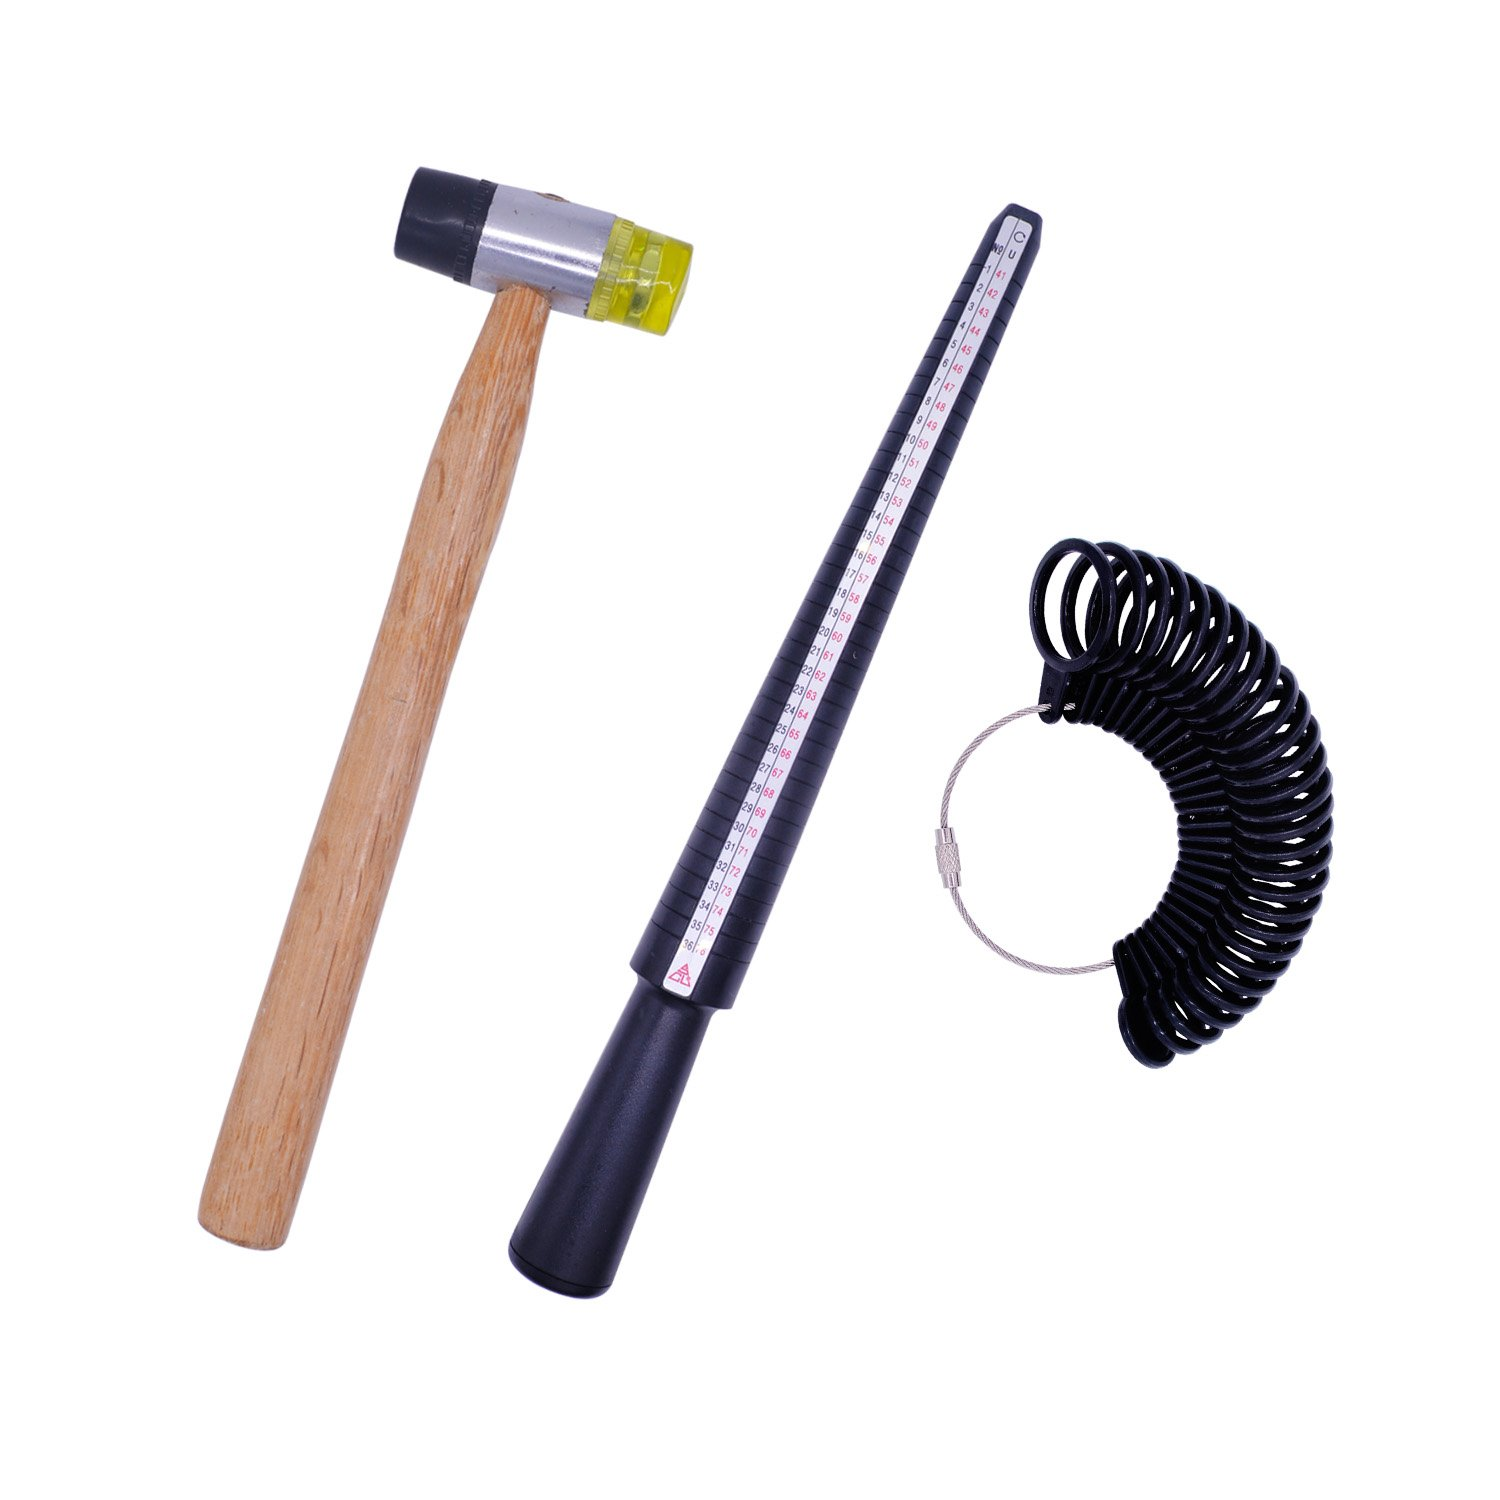 Jewelry Tools Kit, Doubletwo Ring Sizer Tool Plastic Ring Mandrel Finger Sizing Measuring Stick Ring Sizer Guage Wooden Handle Jewelers Rubber Hammer